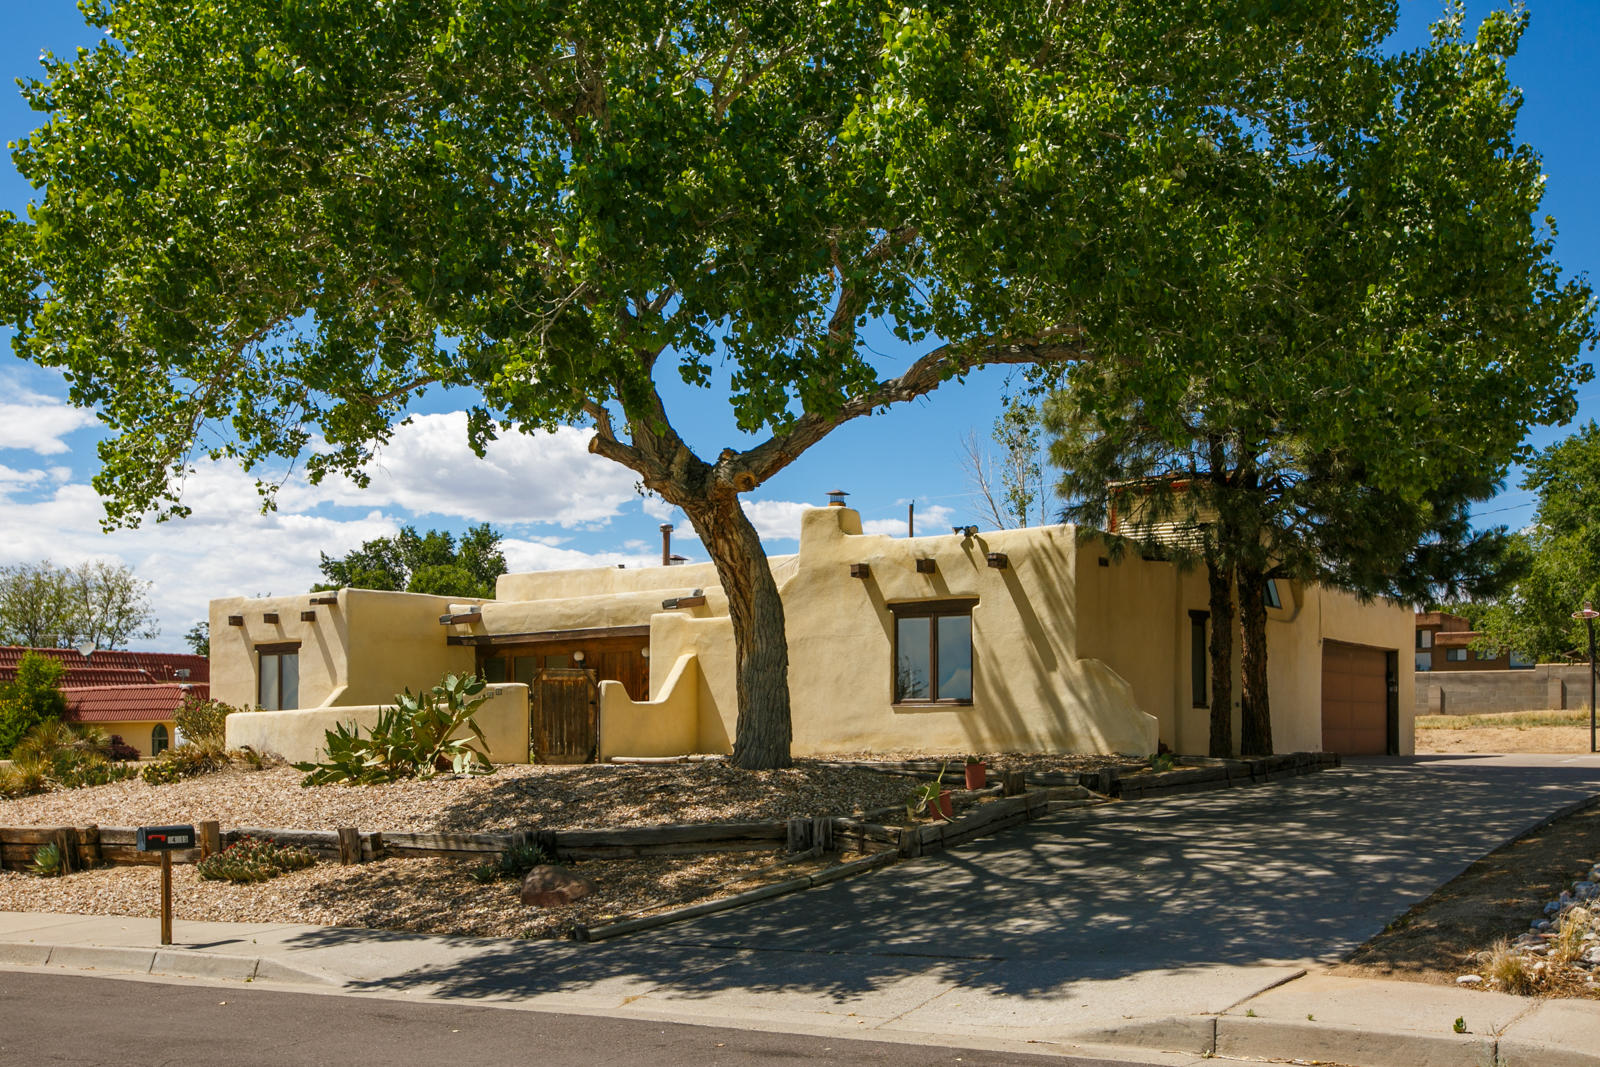 Take a look at this great Adobe home in a convenient NE Heights location. This property is loaded with Santa Fe charm including exposed adobe accents, gleaming brick floors, charming kiva fireplaces, beautiful beamed ceilings, and multiple private courtyards. There are 2 living areas, with a double sided fireplace separating them, a formal dinging room and a breakfast nook open to the kitchen, a large laundry room, and 4 bedrooms. The master suite offers a charming private courtyard and is in it's own separate wing of the house allowing for lots of privacy. The kitchen features handcrafted cabinetry and gleaming granite countertops. The backyard is huge and offers many possibilities for the next owner to customize to their liking. Convenient access to Sandia Labs, Kirkland, and shopping!